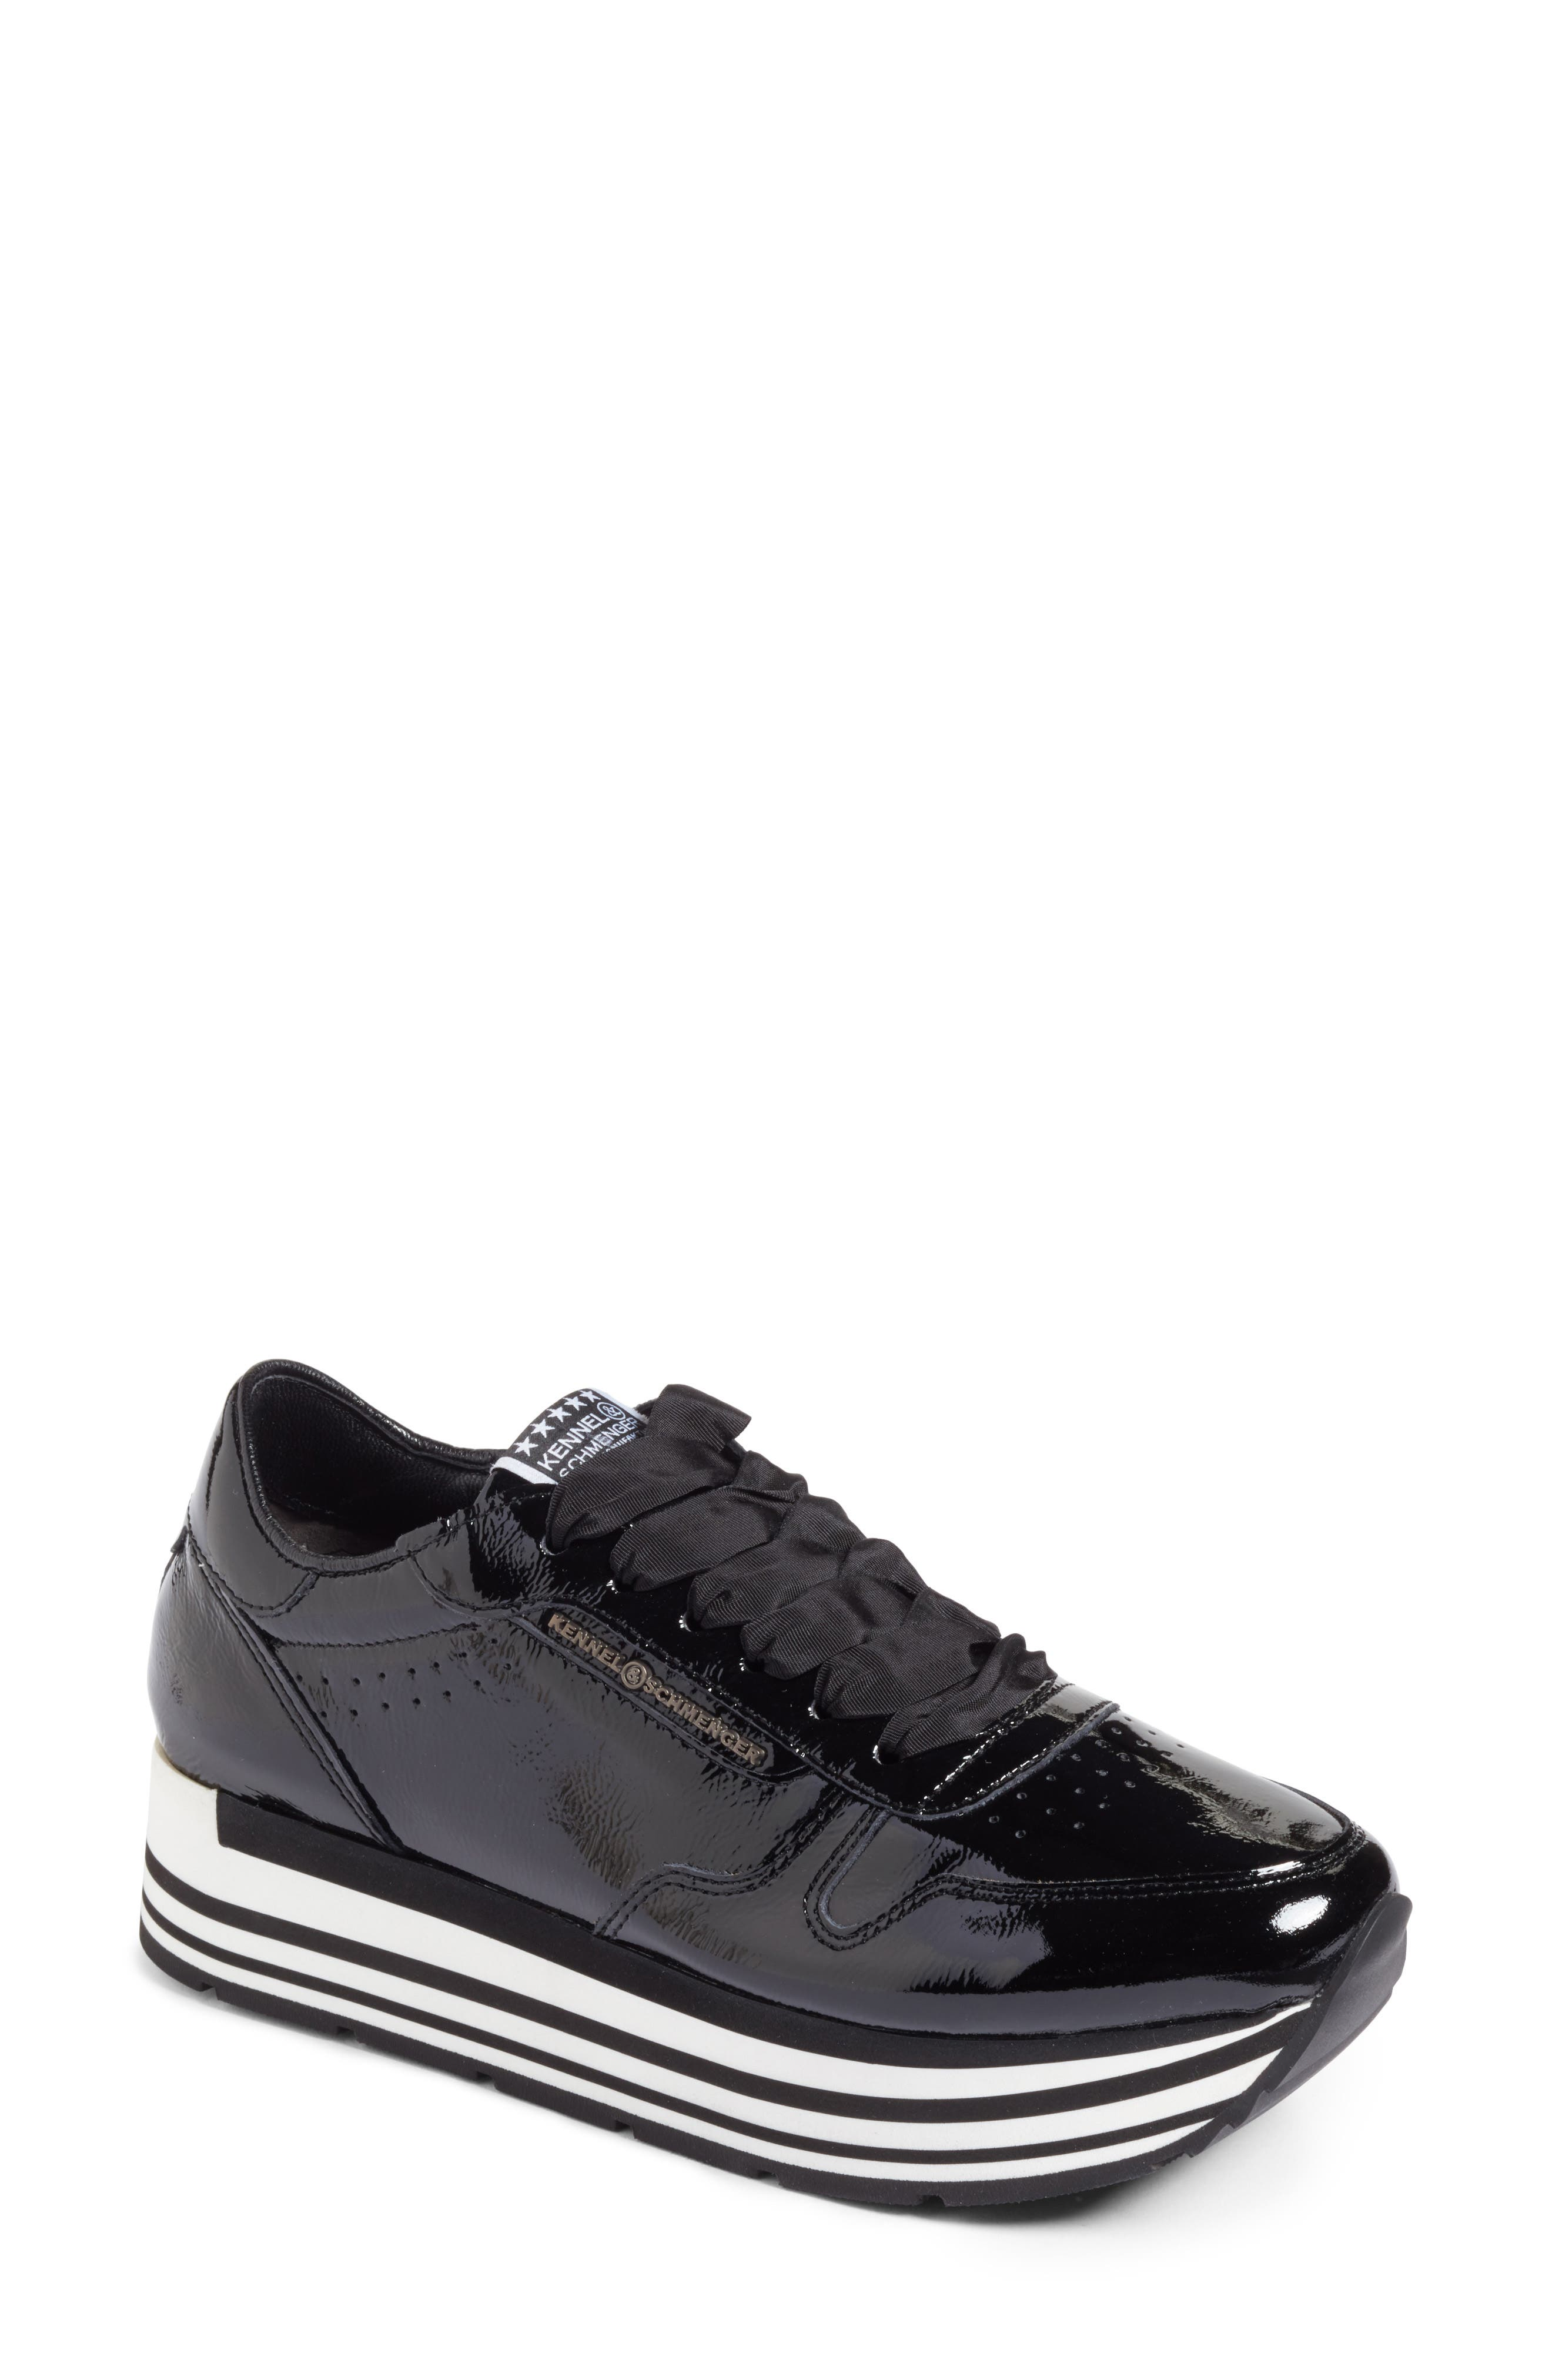 Kennel & Schmenger Nova Patent Leather Sneaker,                             Main thumbnail 1, color,                             001